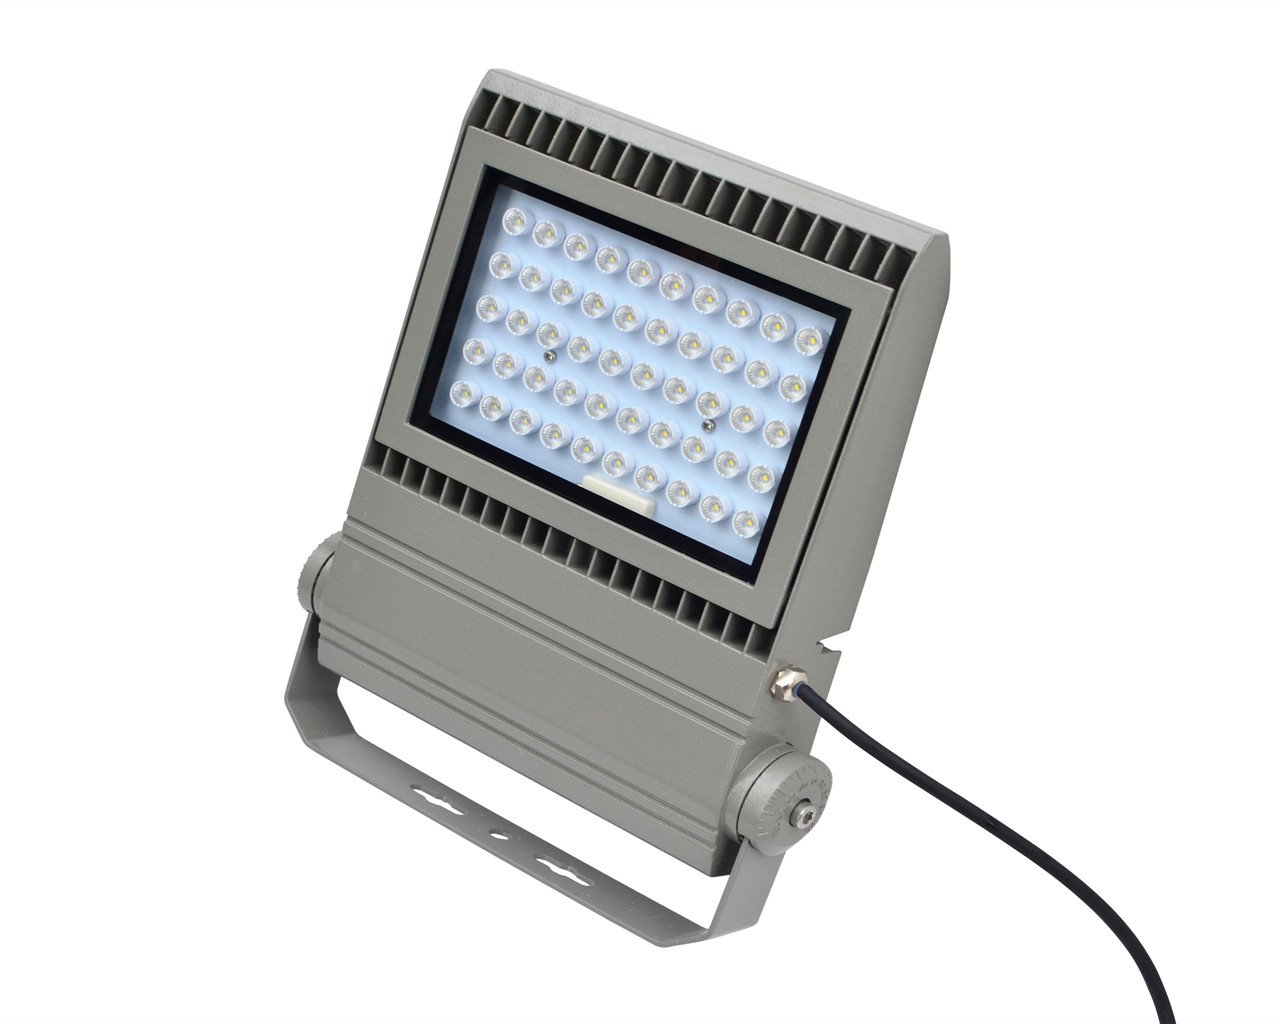 LED Outdoor Flood Lights 100W Sports Field Lights Super Bright LED Lights for Stadium Waterproof Outdoor Light 11000LM ETL DLC Listed by Yao-Lite